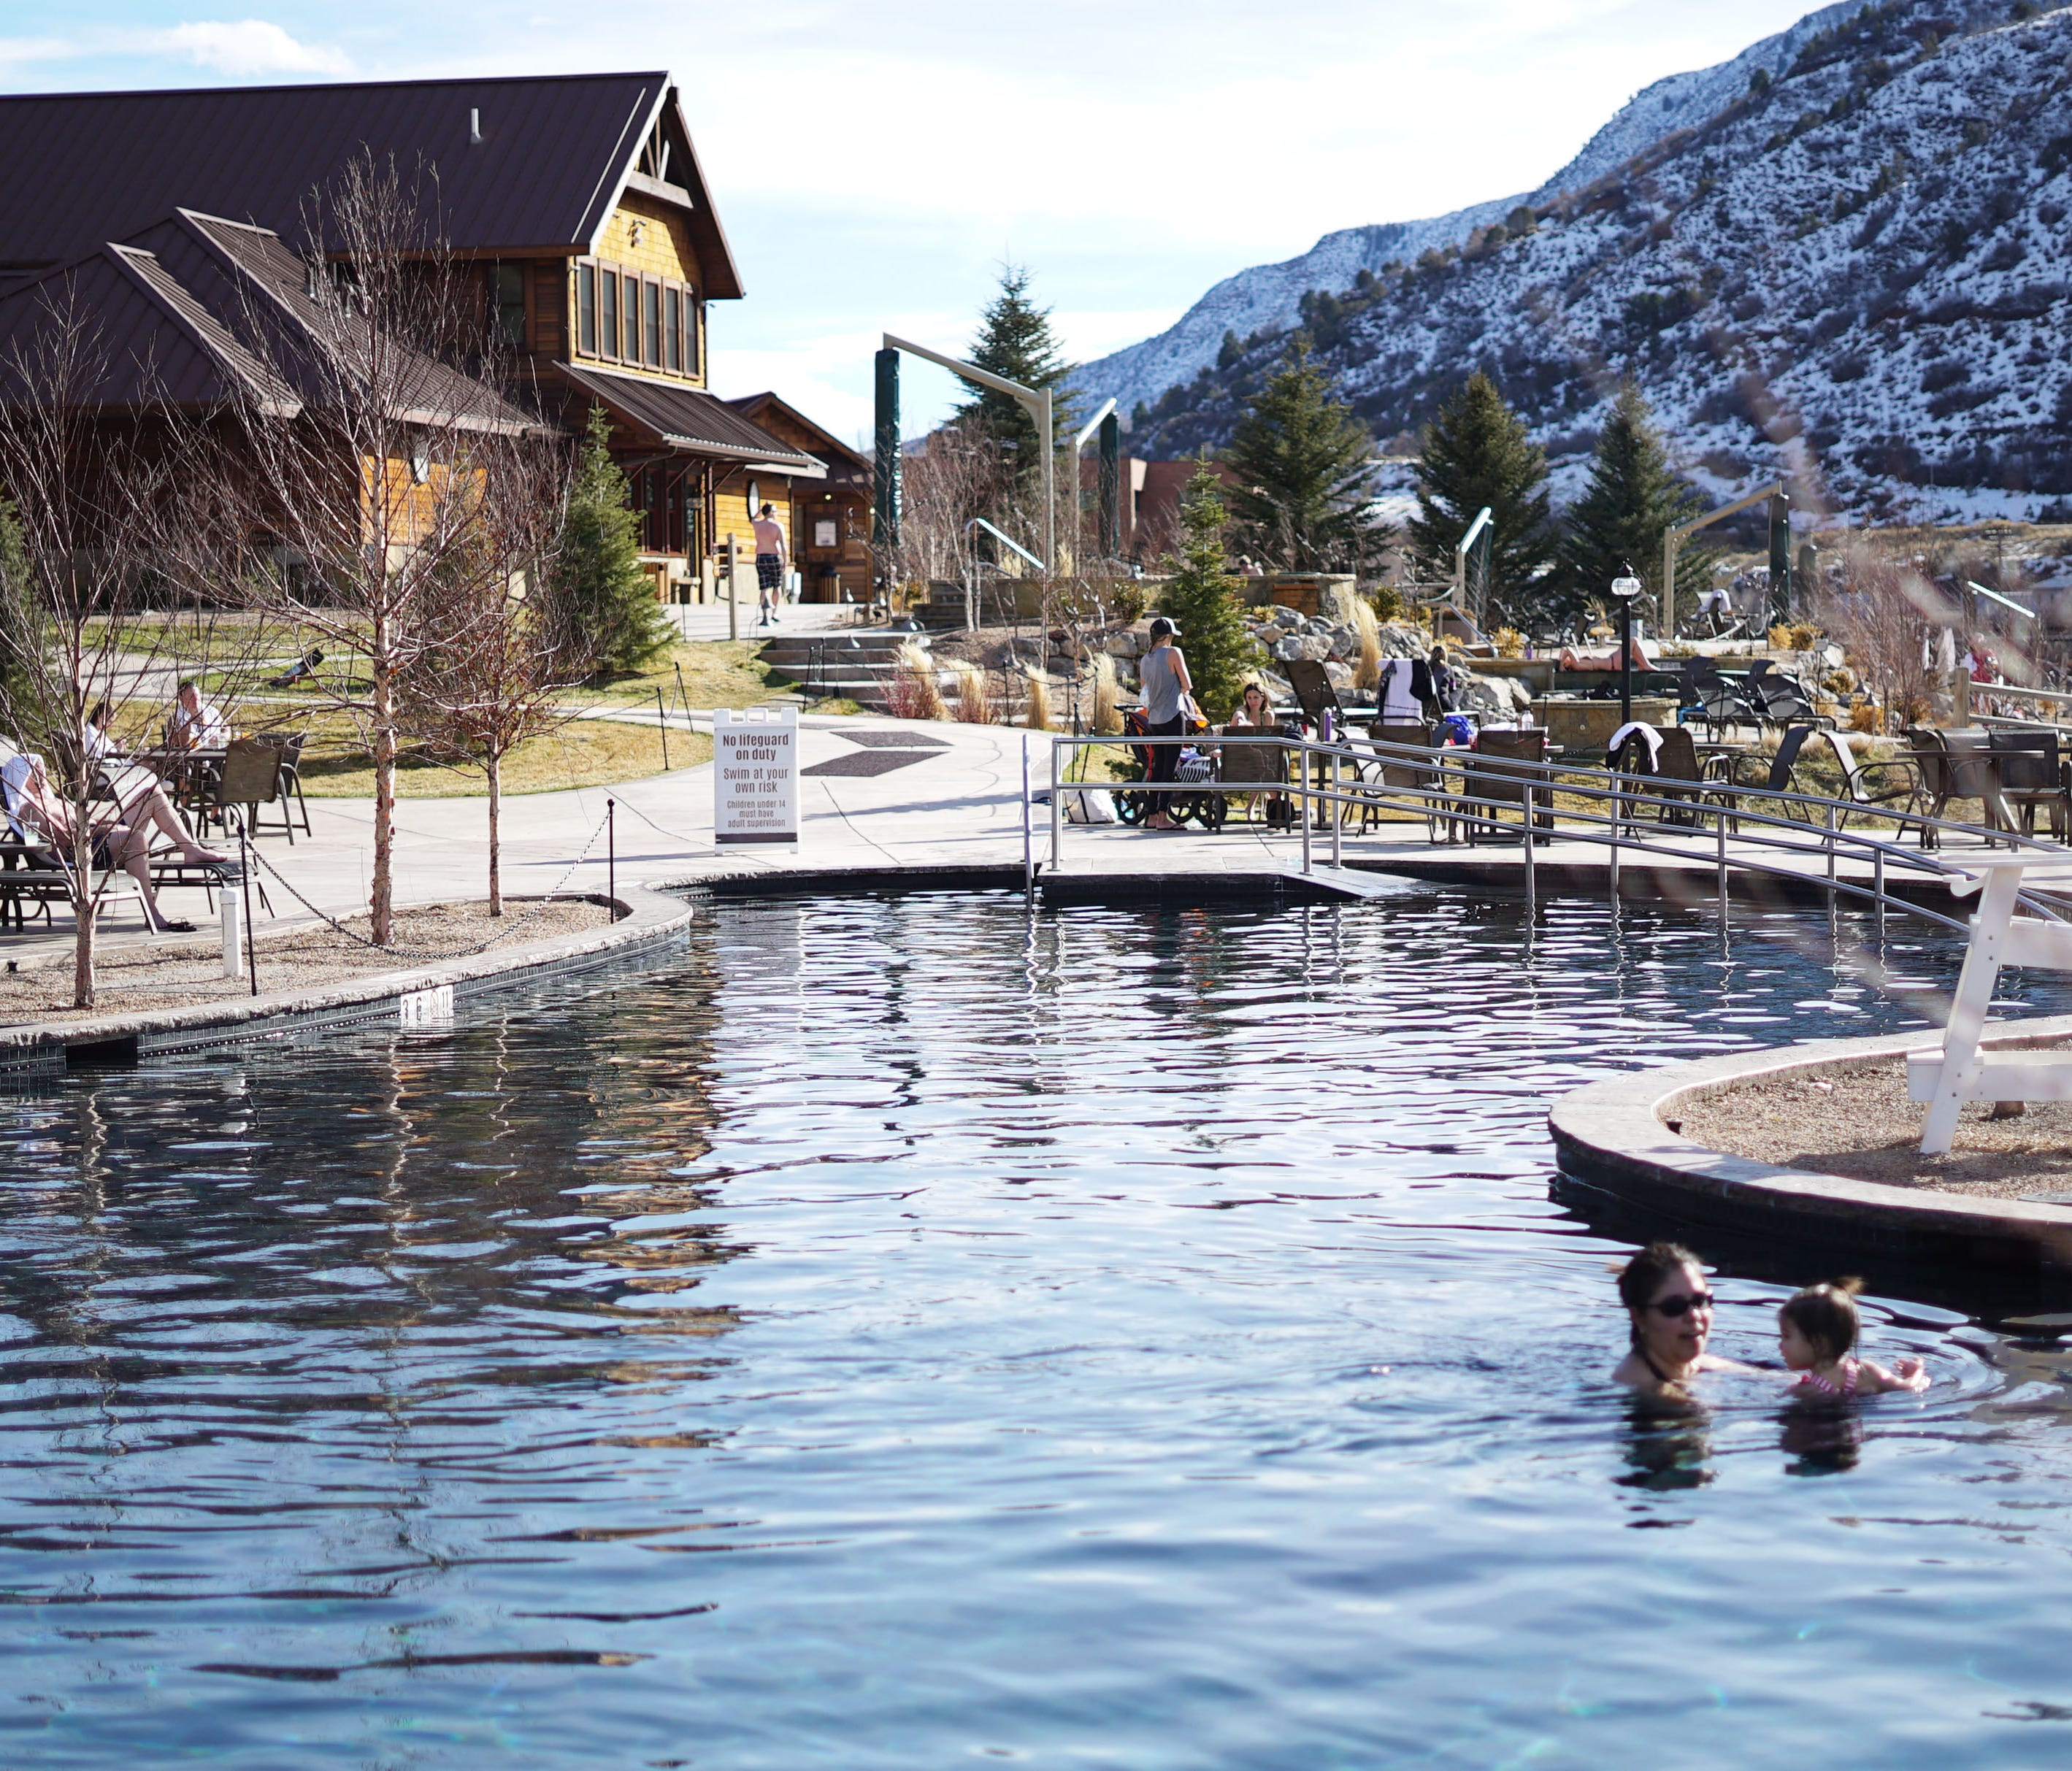 Many hot springs resorts offer both small soaking pools and larger swimming pools, which lower temperatures, suitable for cooling off. Here, bathers soak in the large pool at Iron Mountain Hot Springs.